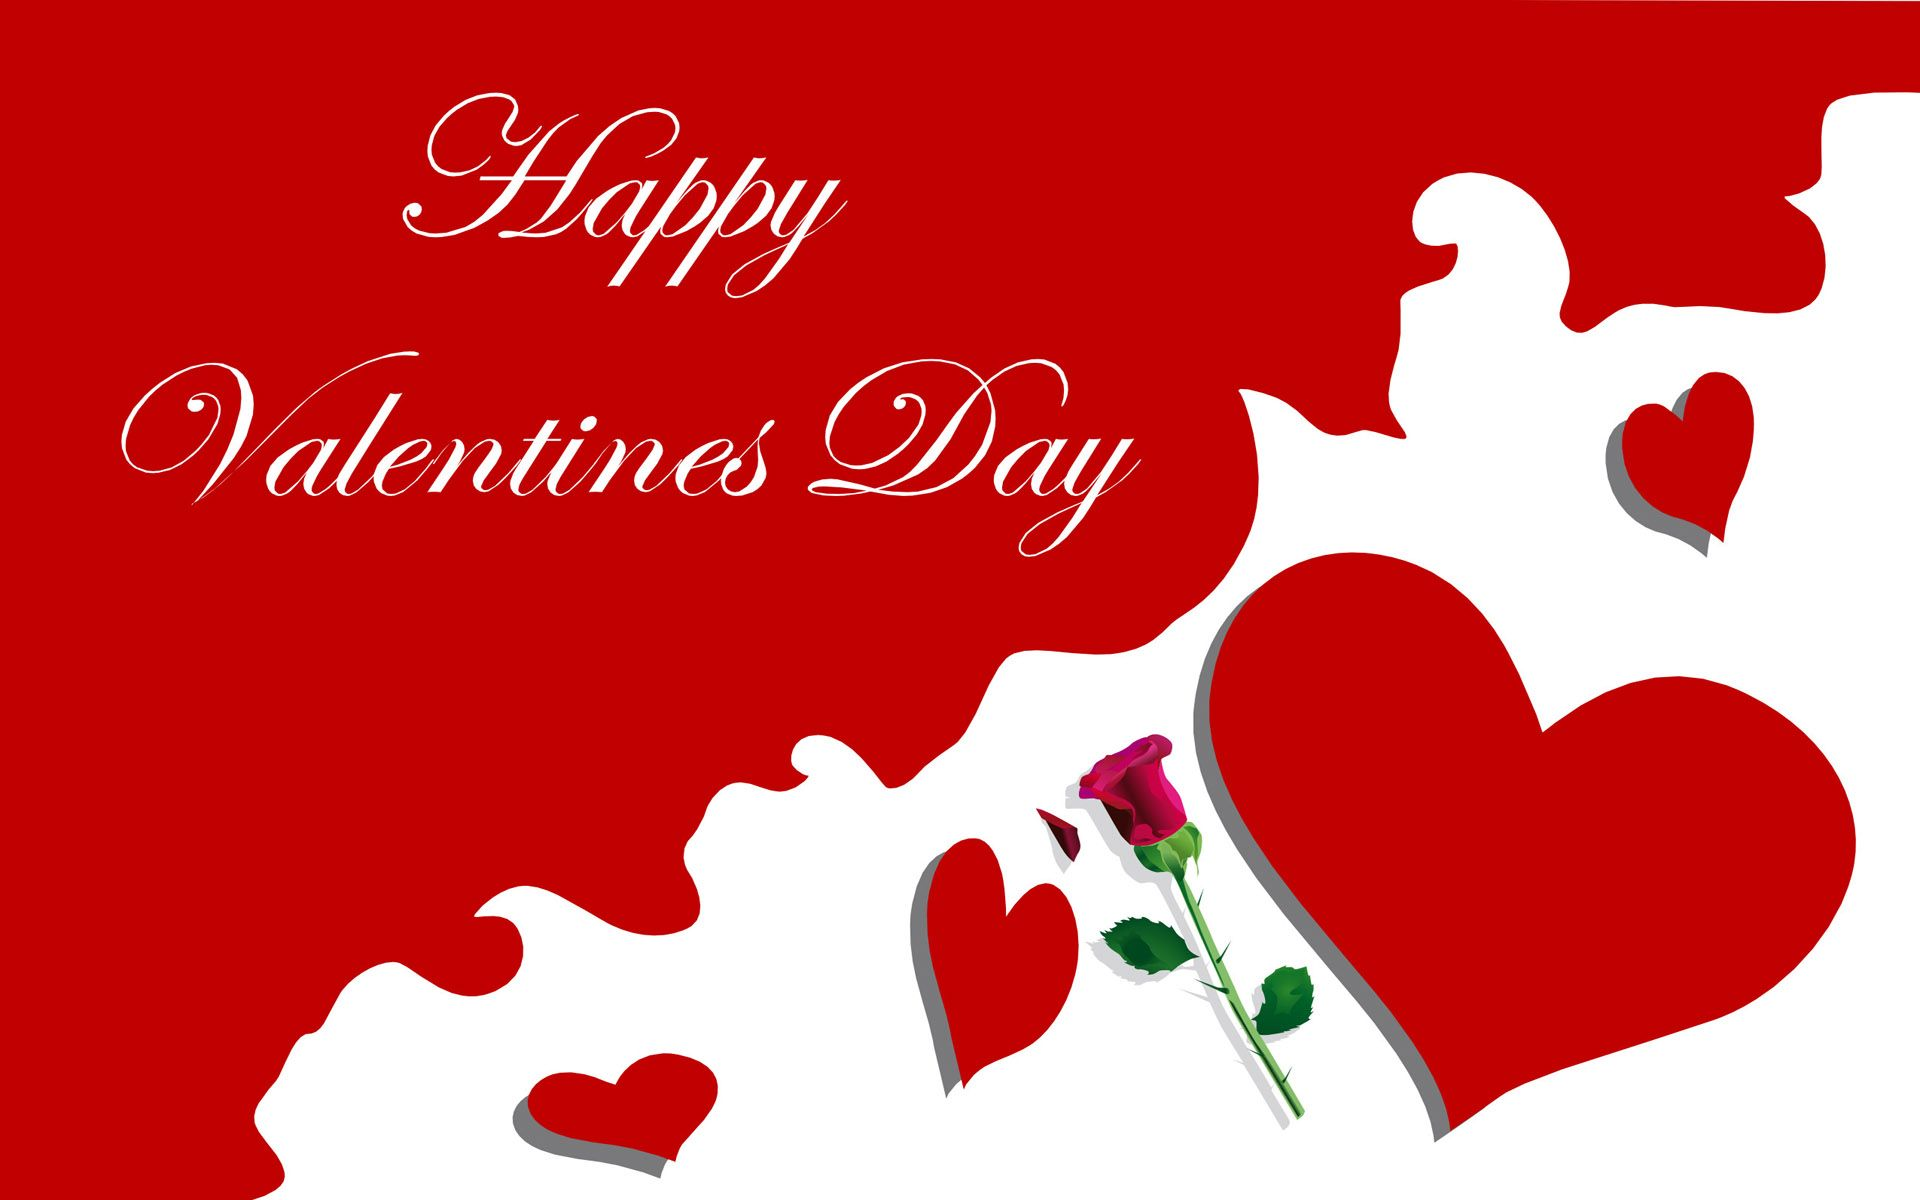 Happy Valentines Day Images 2015 – Romantic Valentine Card Sayings